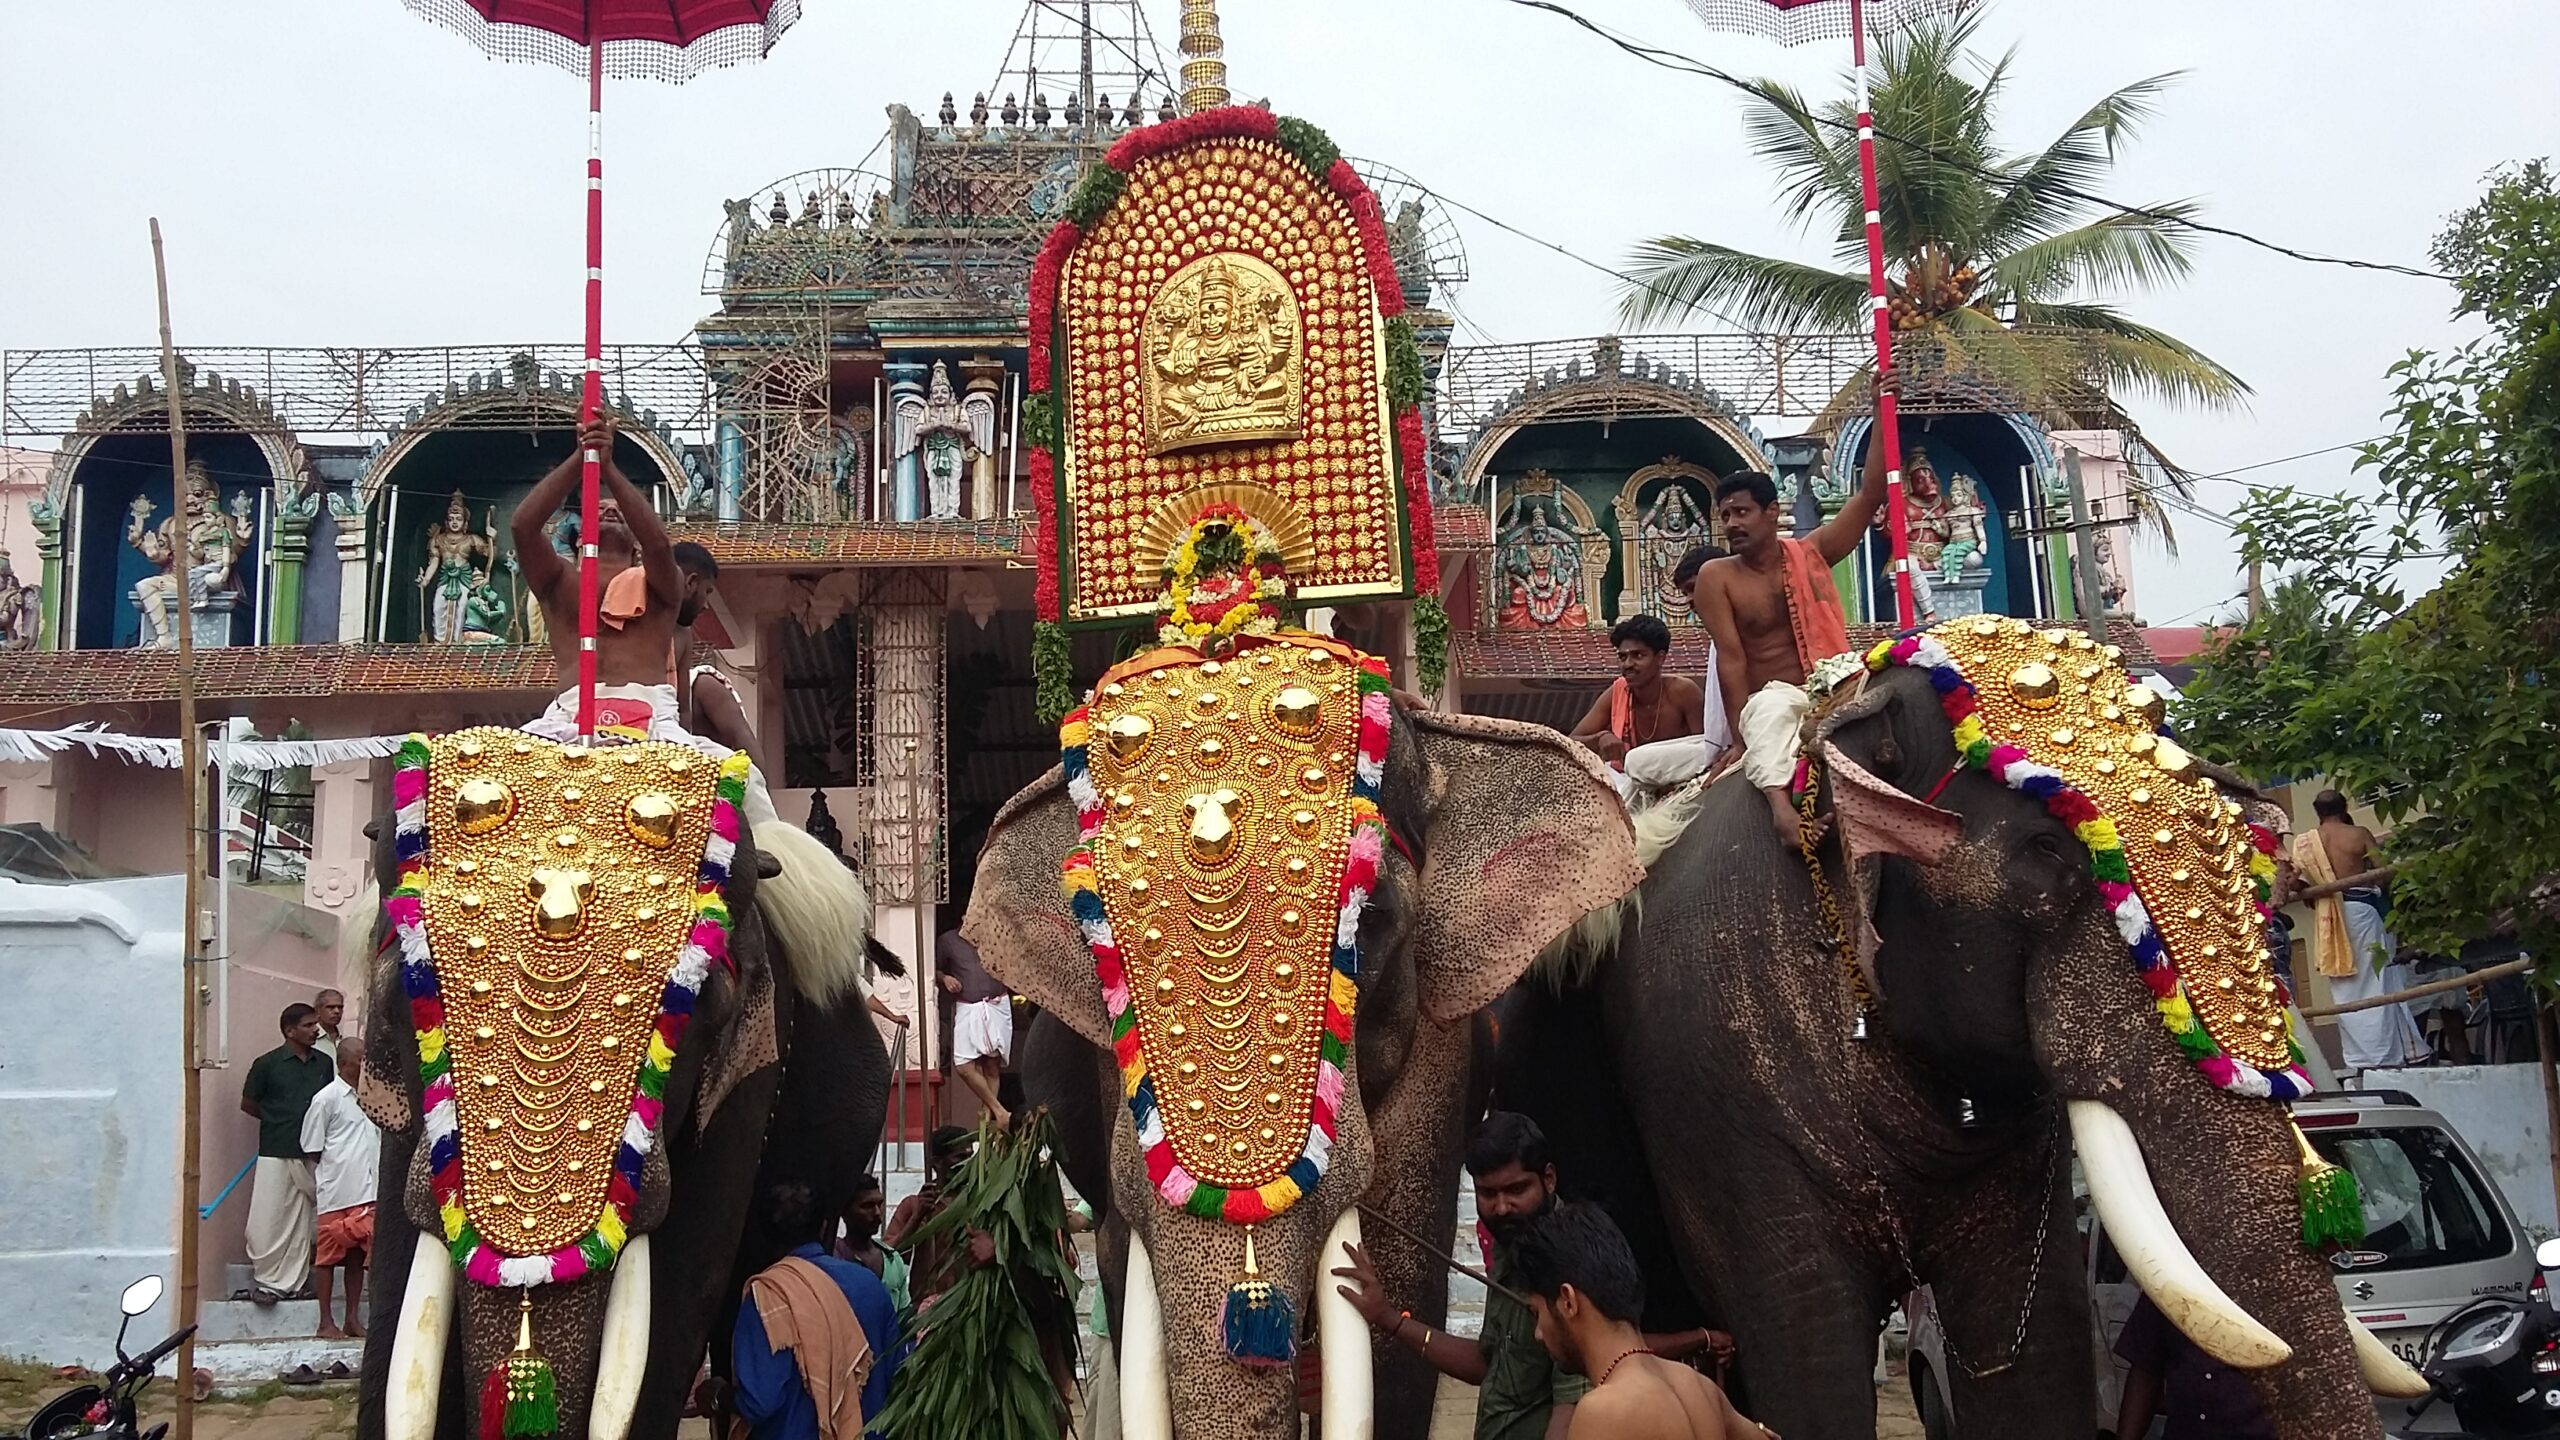 Elephants Are An Integral Part of South India's Navaratri Festivities